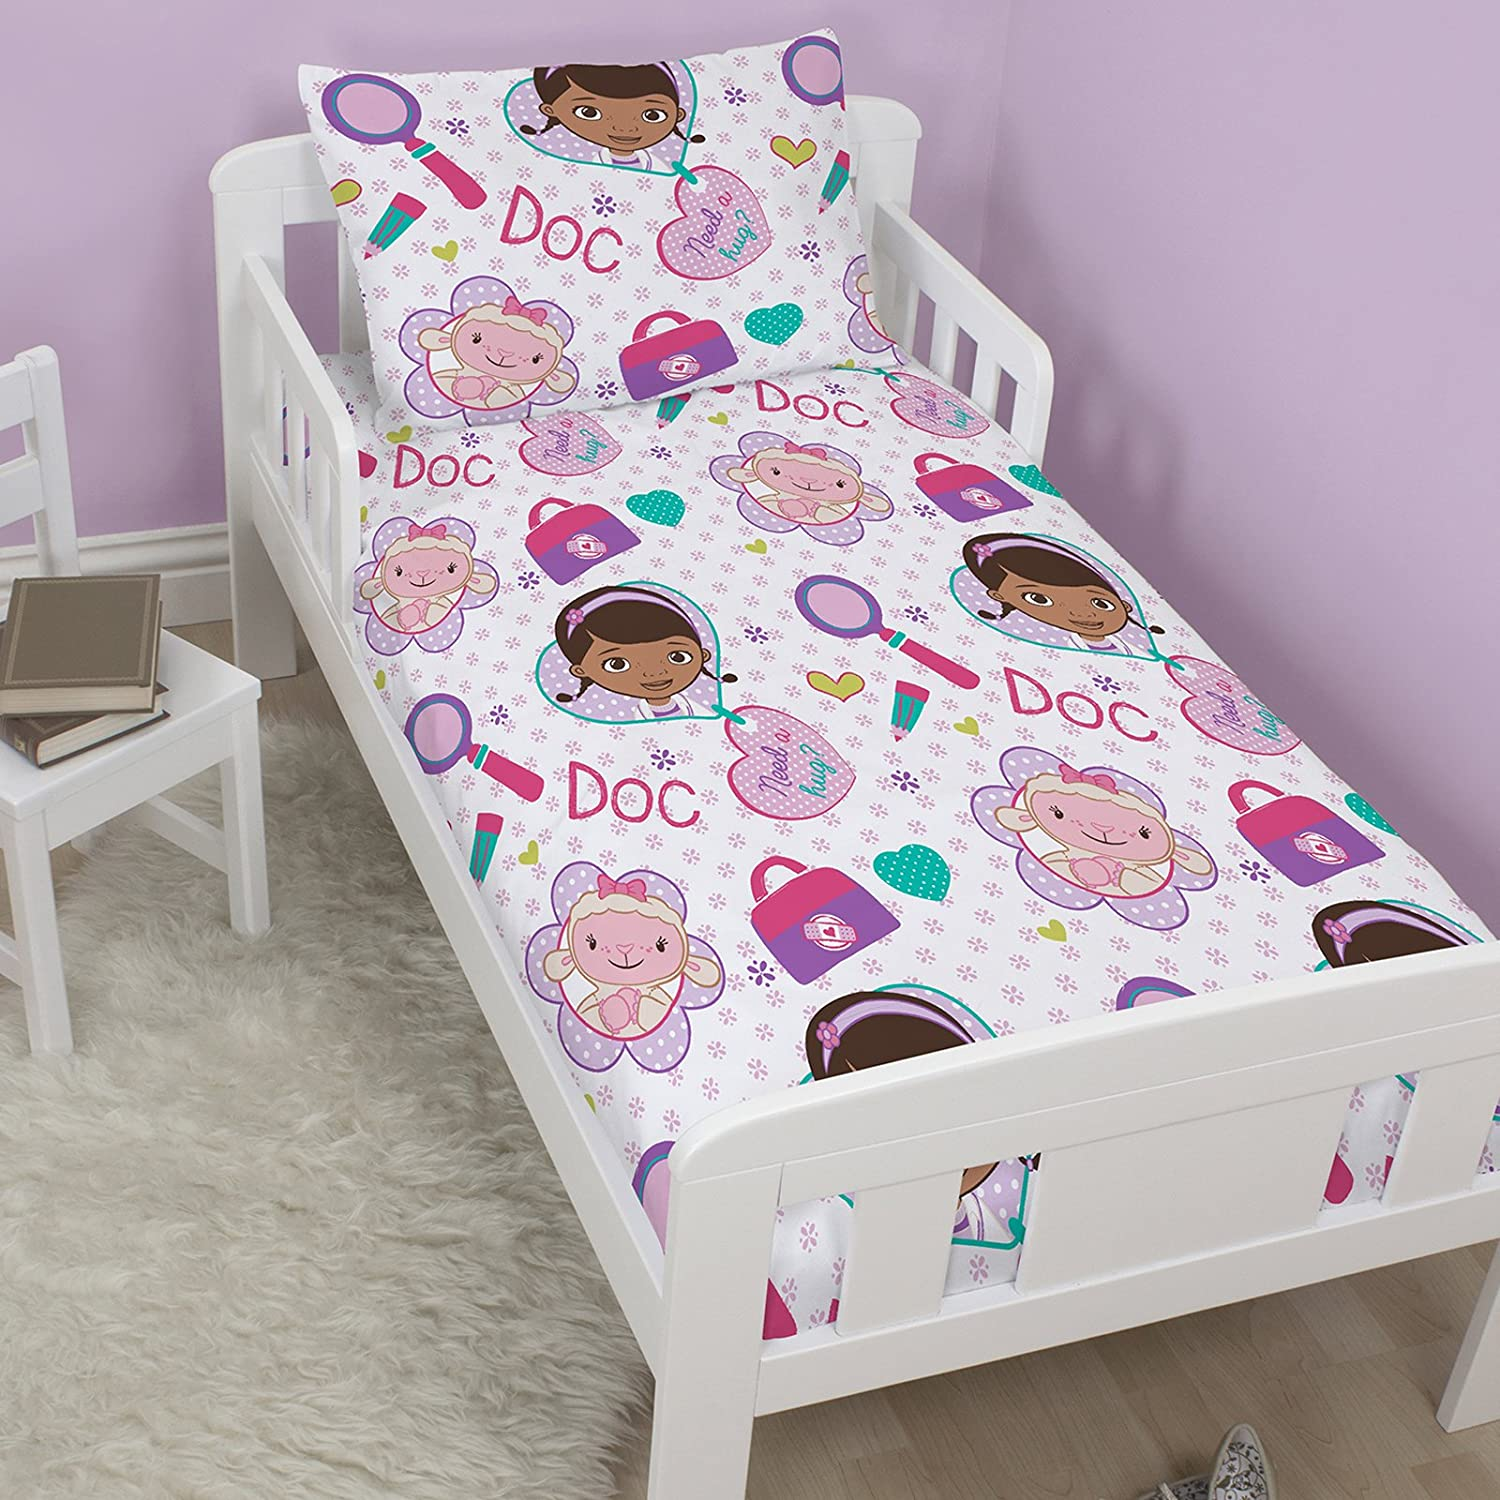 Disney Doc McStuffins Hugs Junior Toddler Rotary Duvet Cover & Pillowcase Set